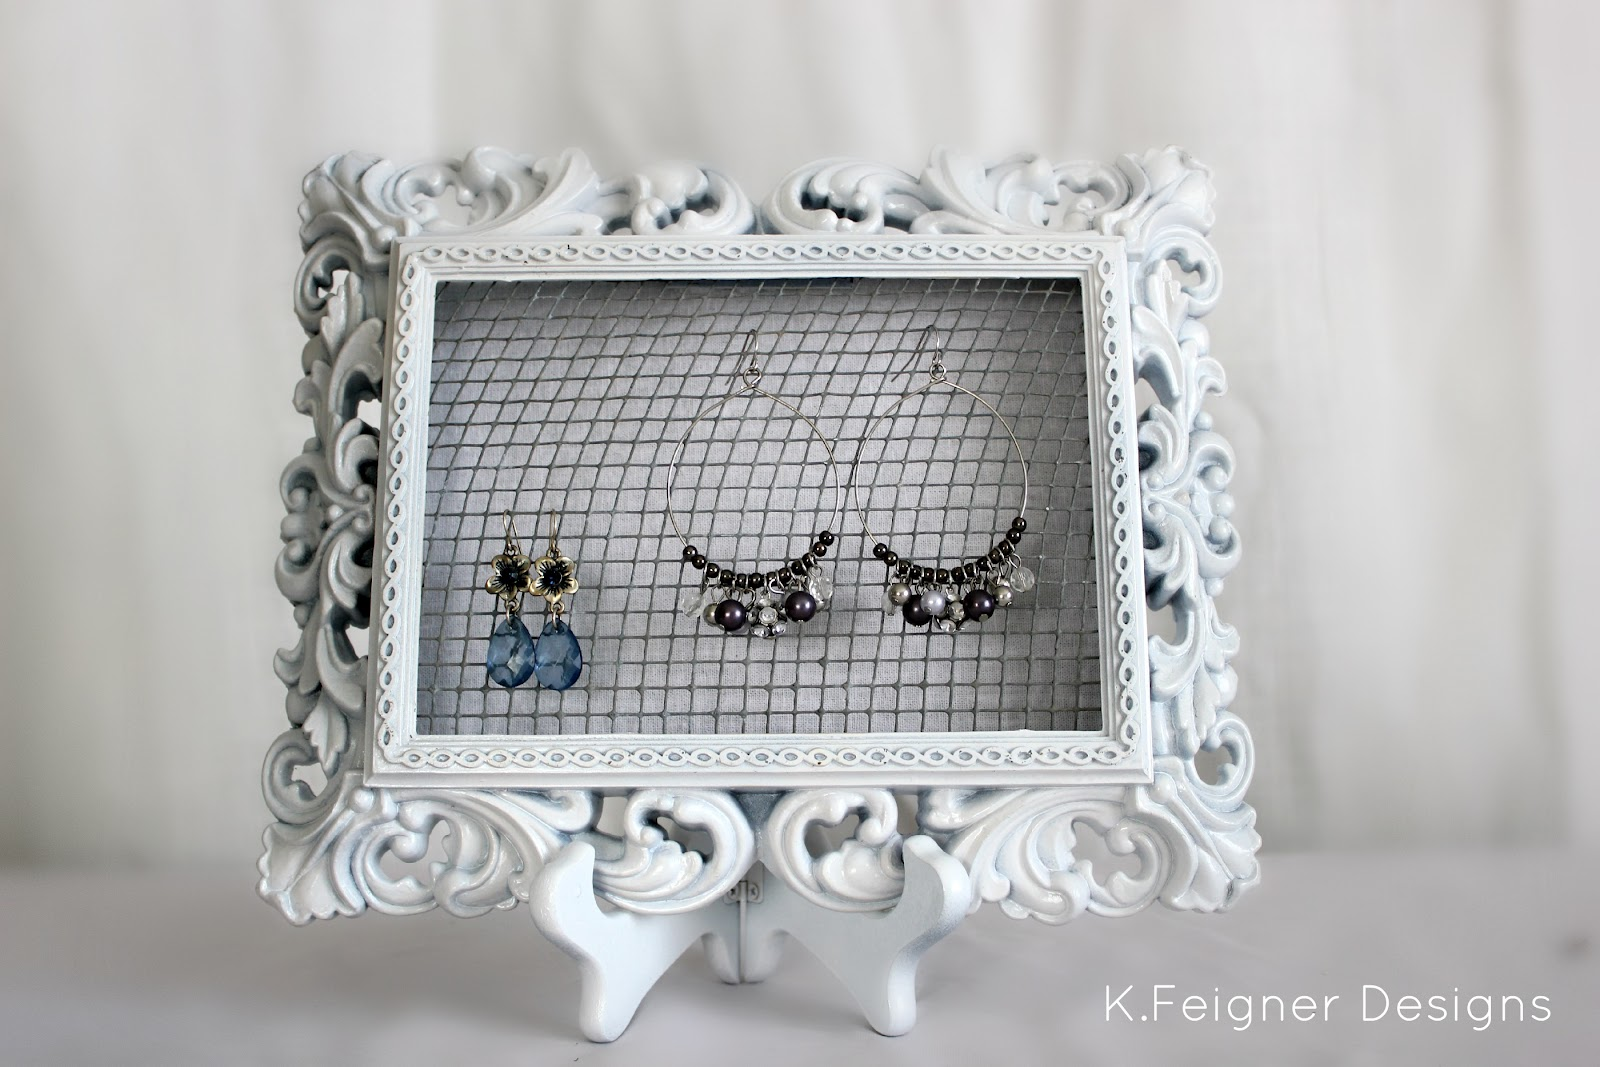 The Crafty Housewife: DIY Frame Earring Display Holder